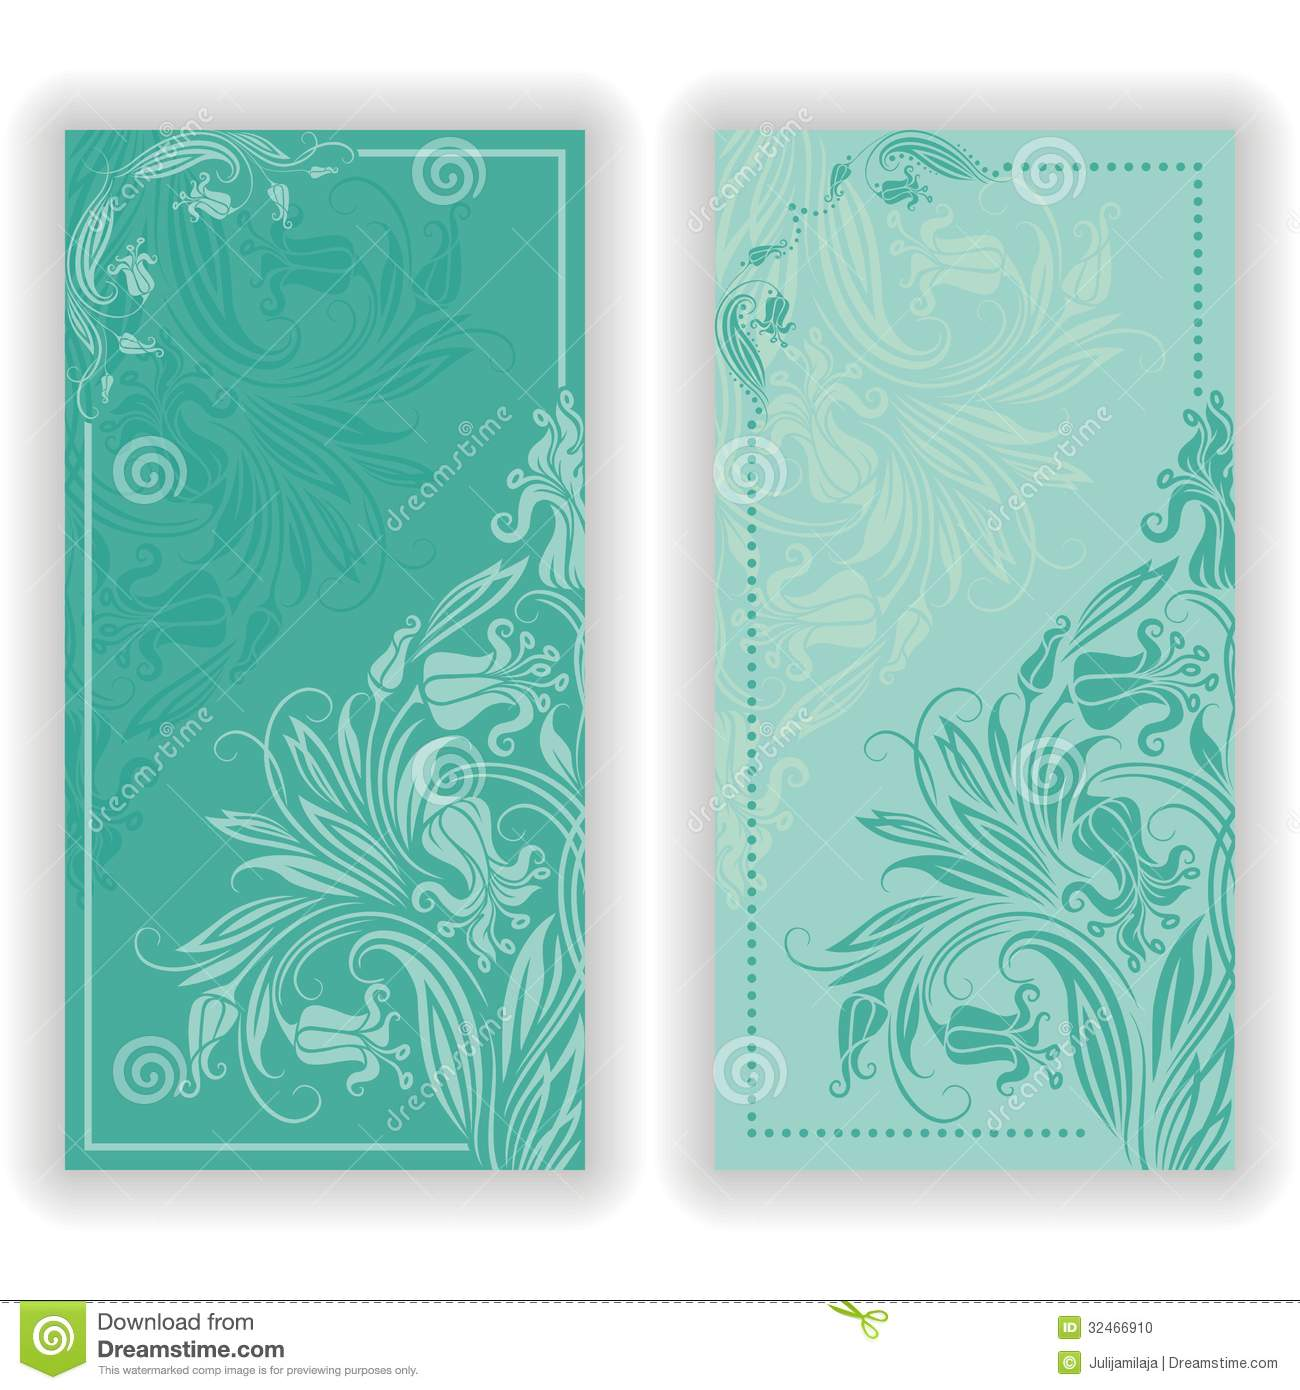 Damask Invitation Template for awesome invitations ideas